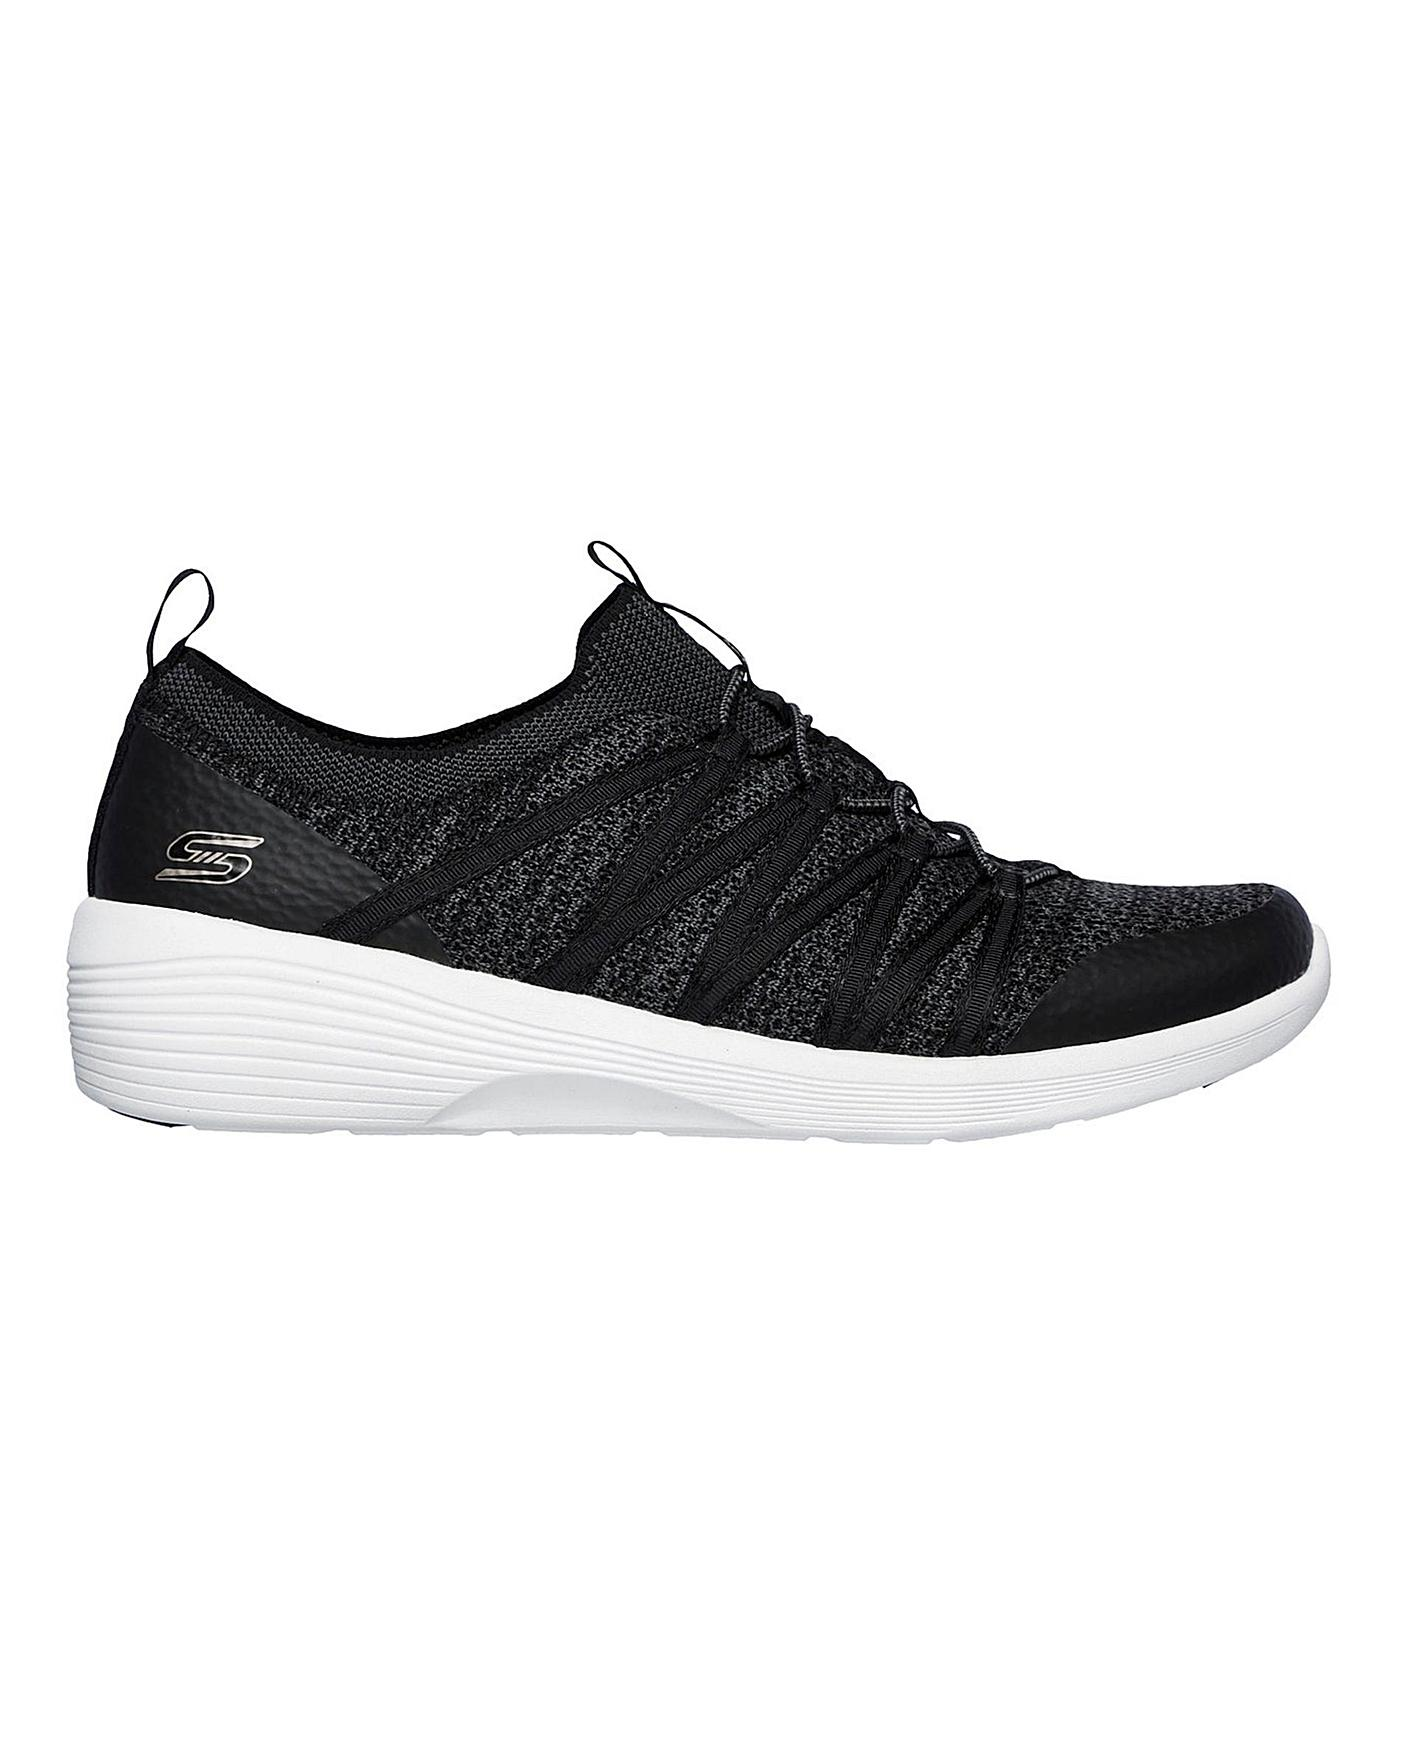 Skechers Slip on Leisure Shoes   Simply Be